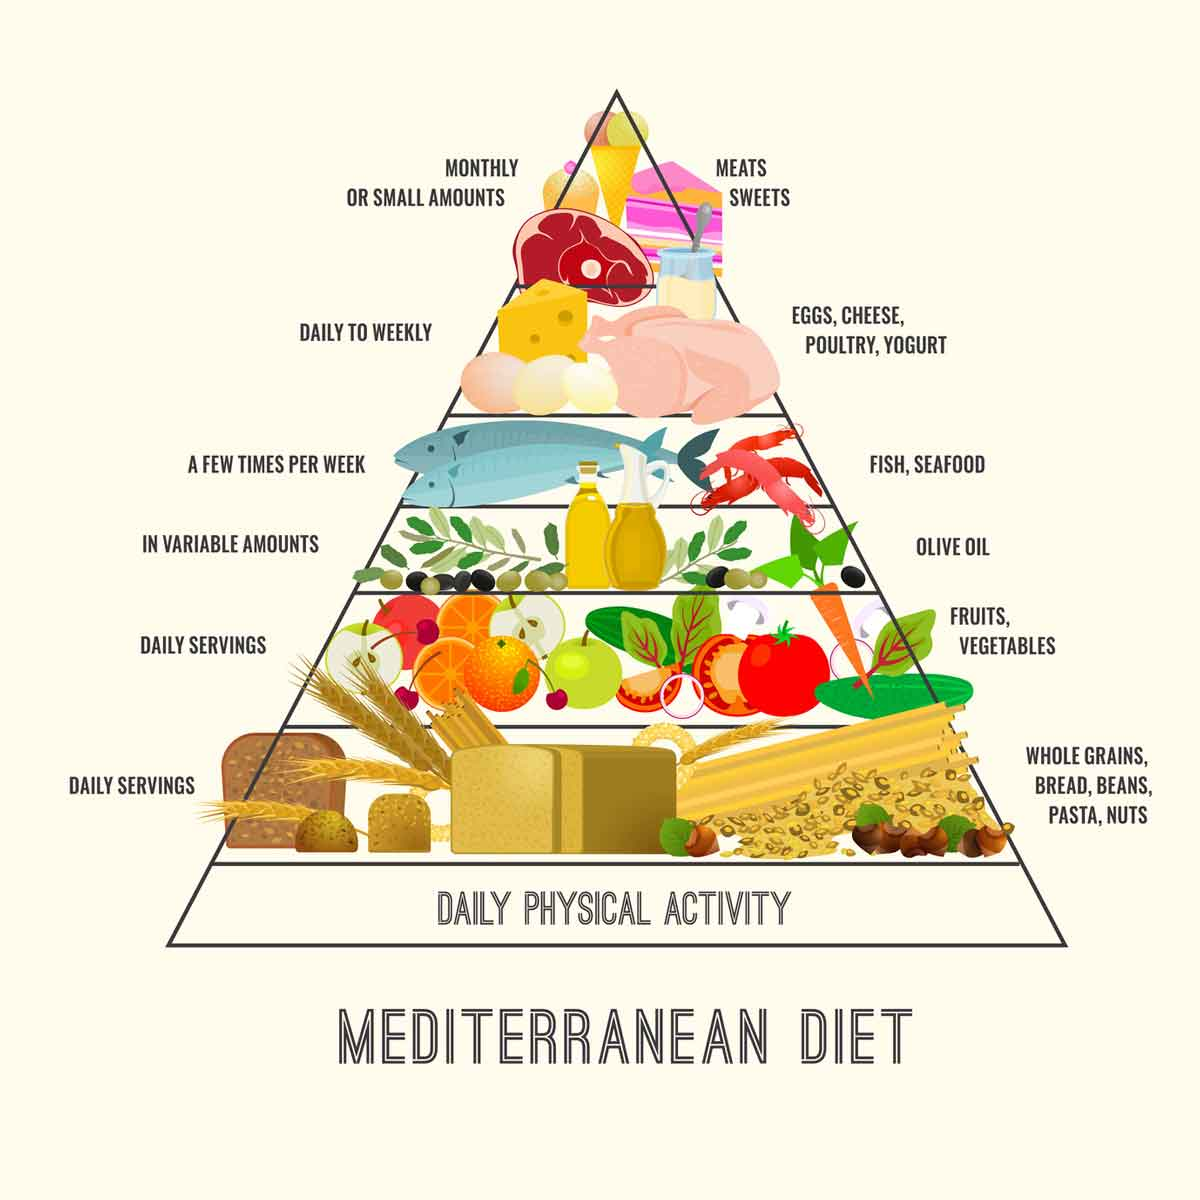 Mediterranean Diet Treats Acid Reflux Better Than